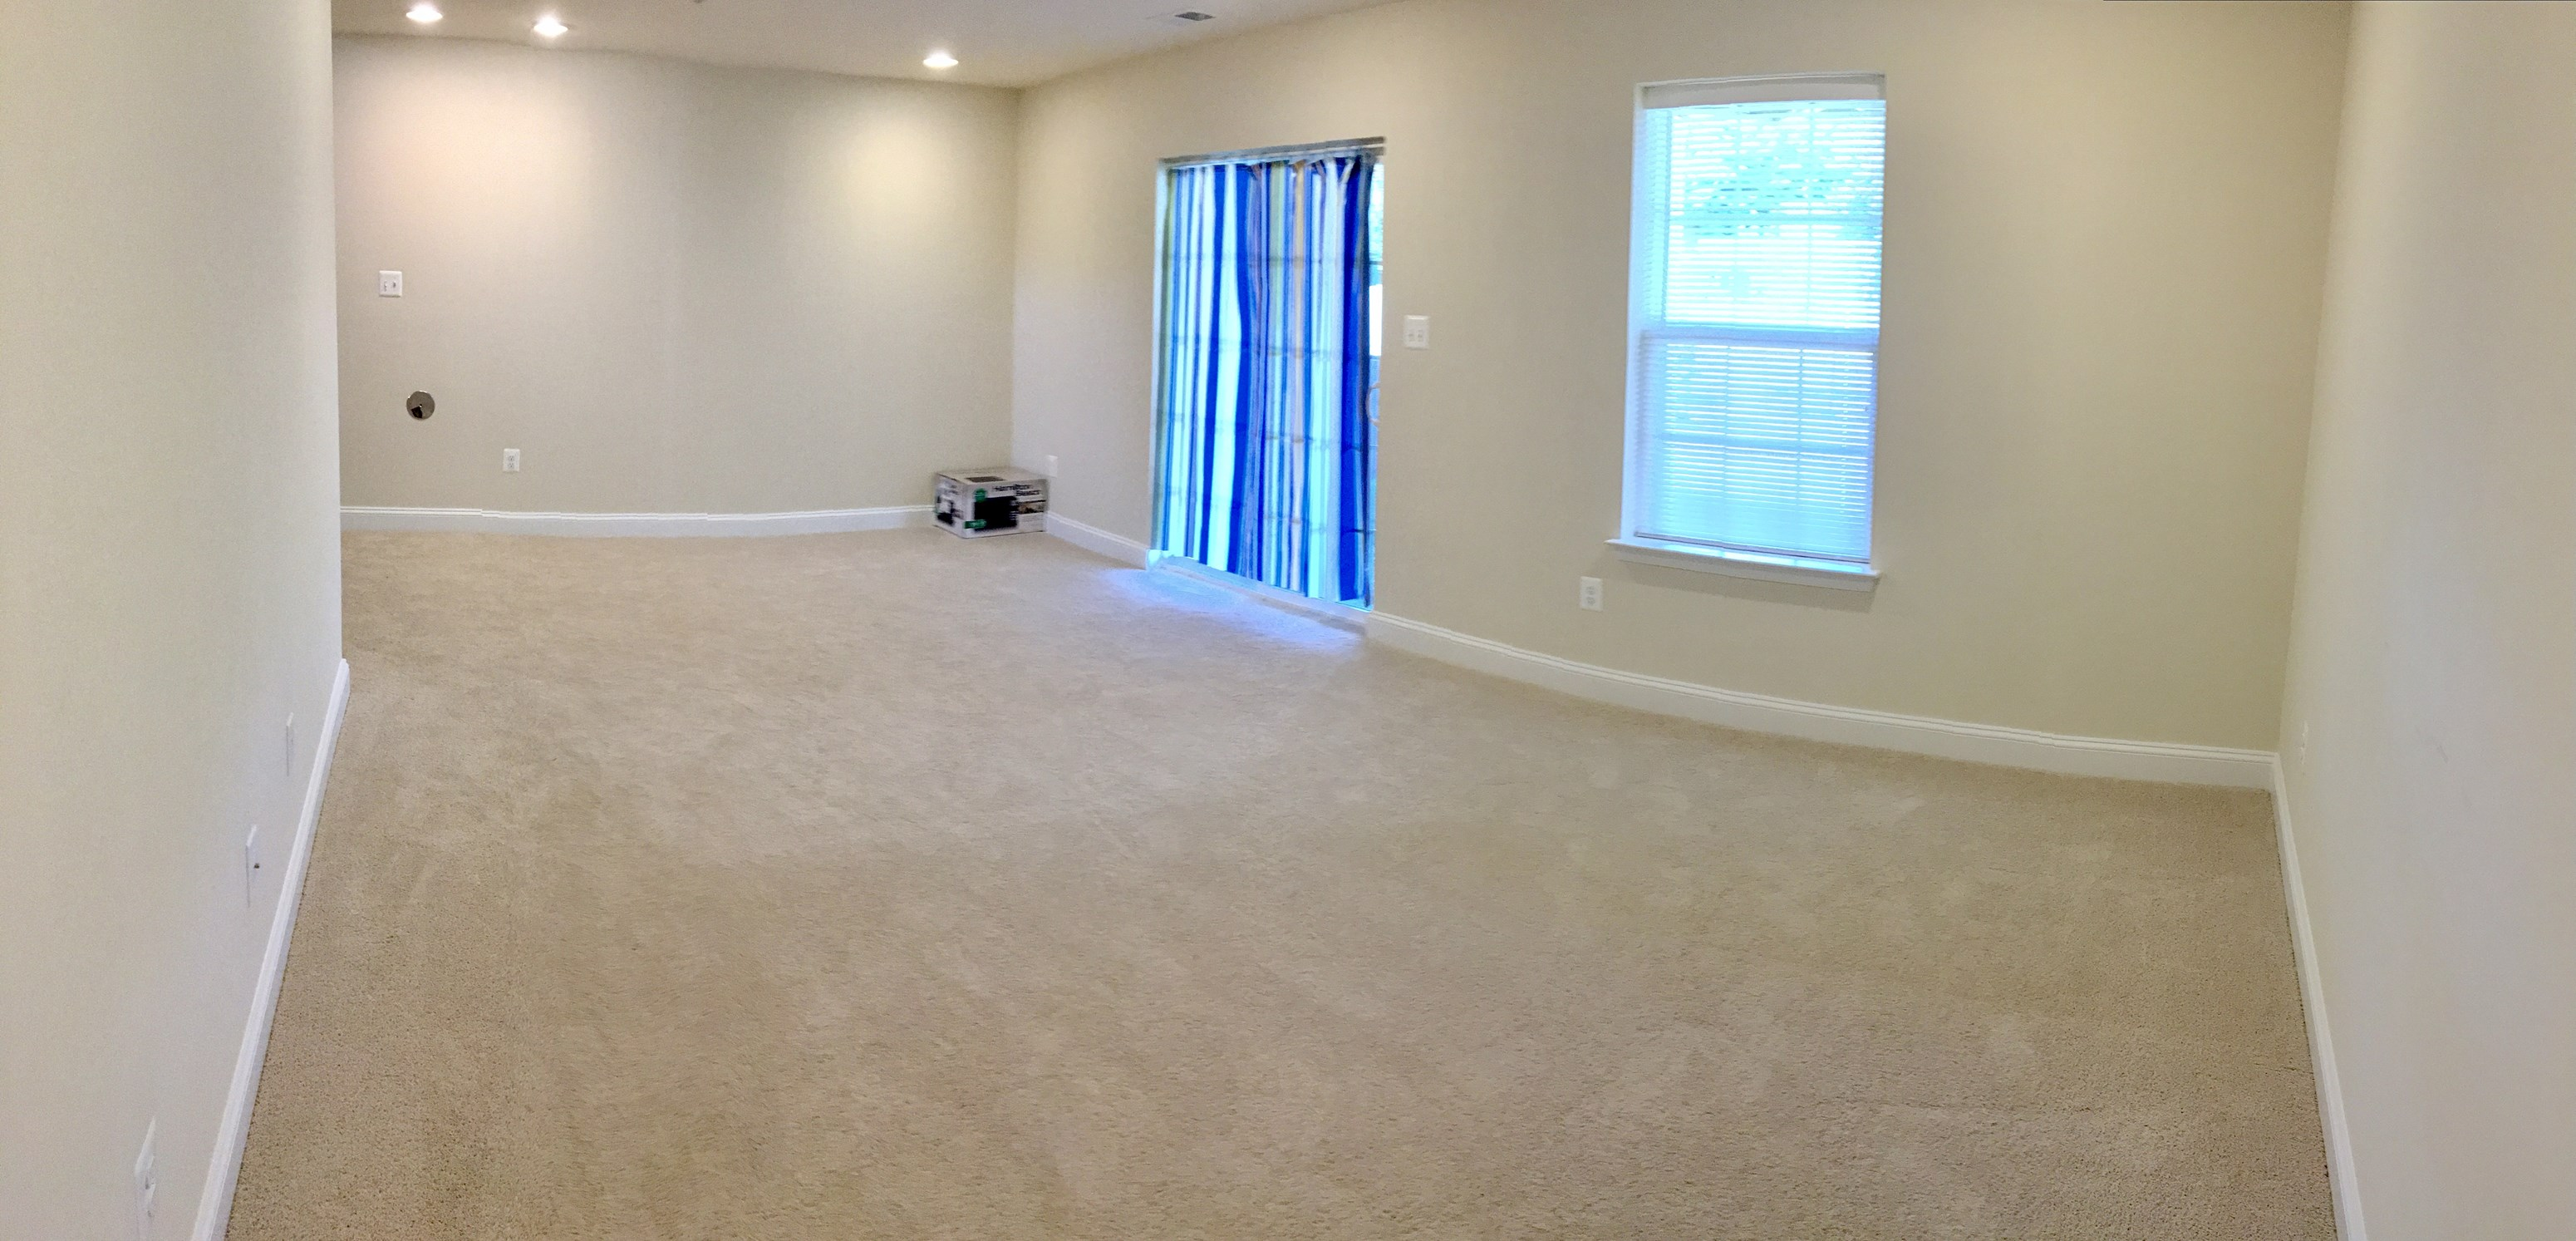 Spacious NEW 1BR/1FB Basement Apartment. Great Location. Utilities Included.